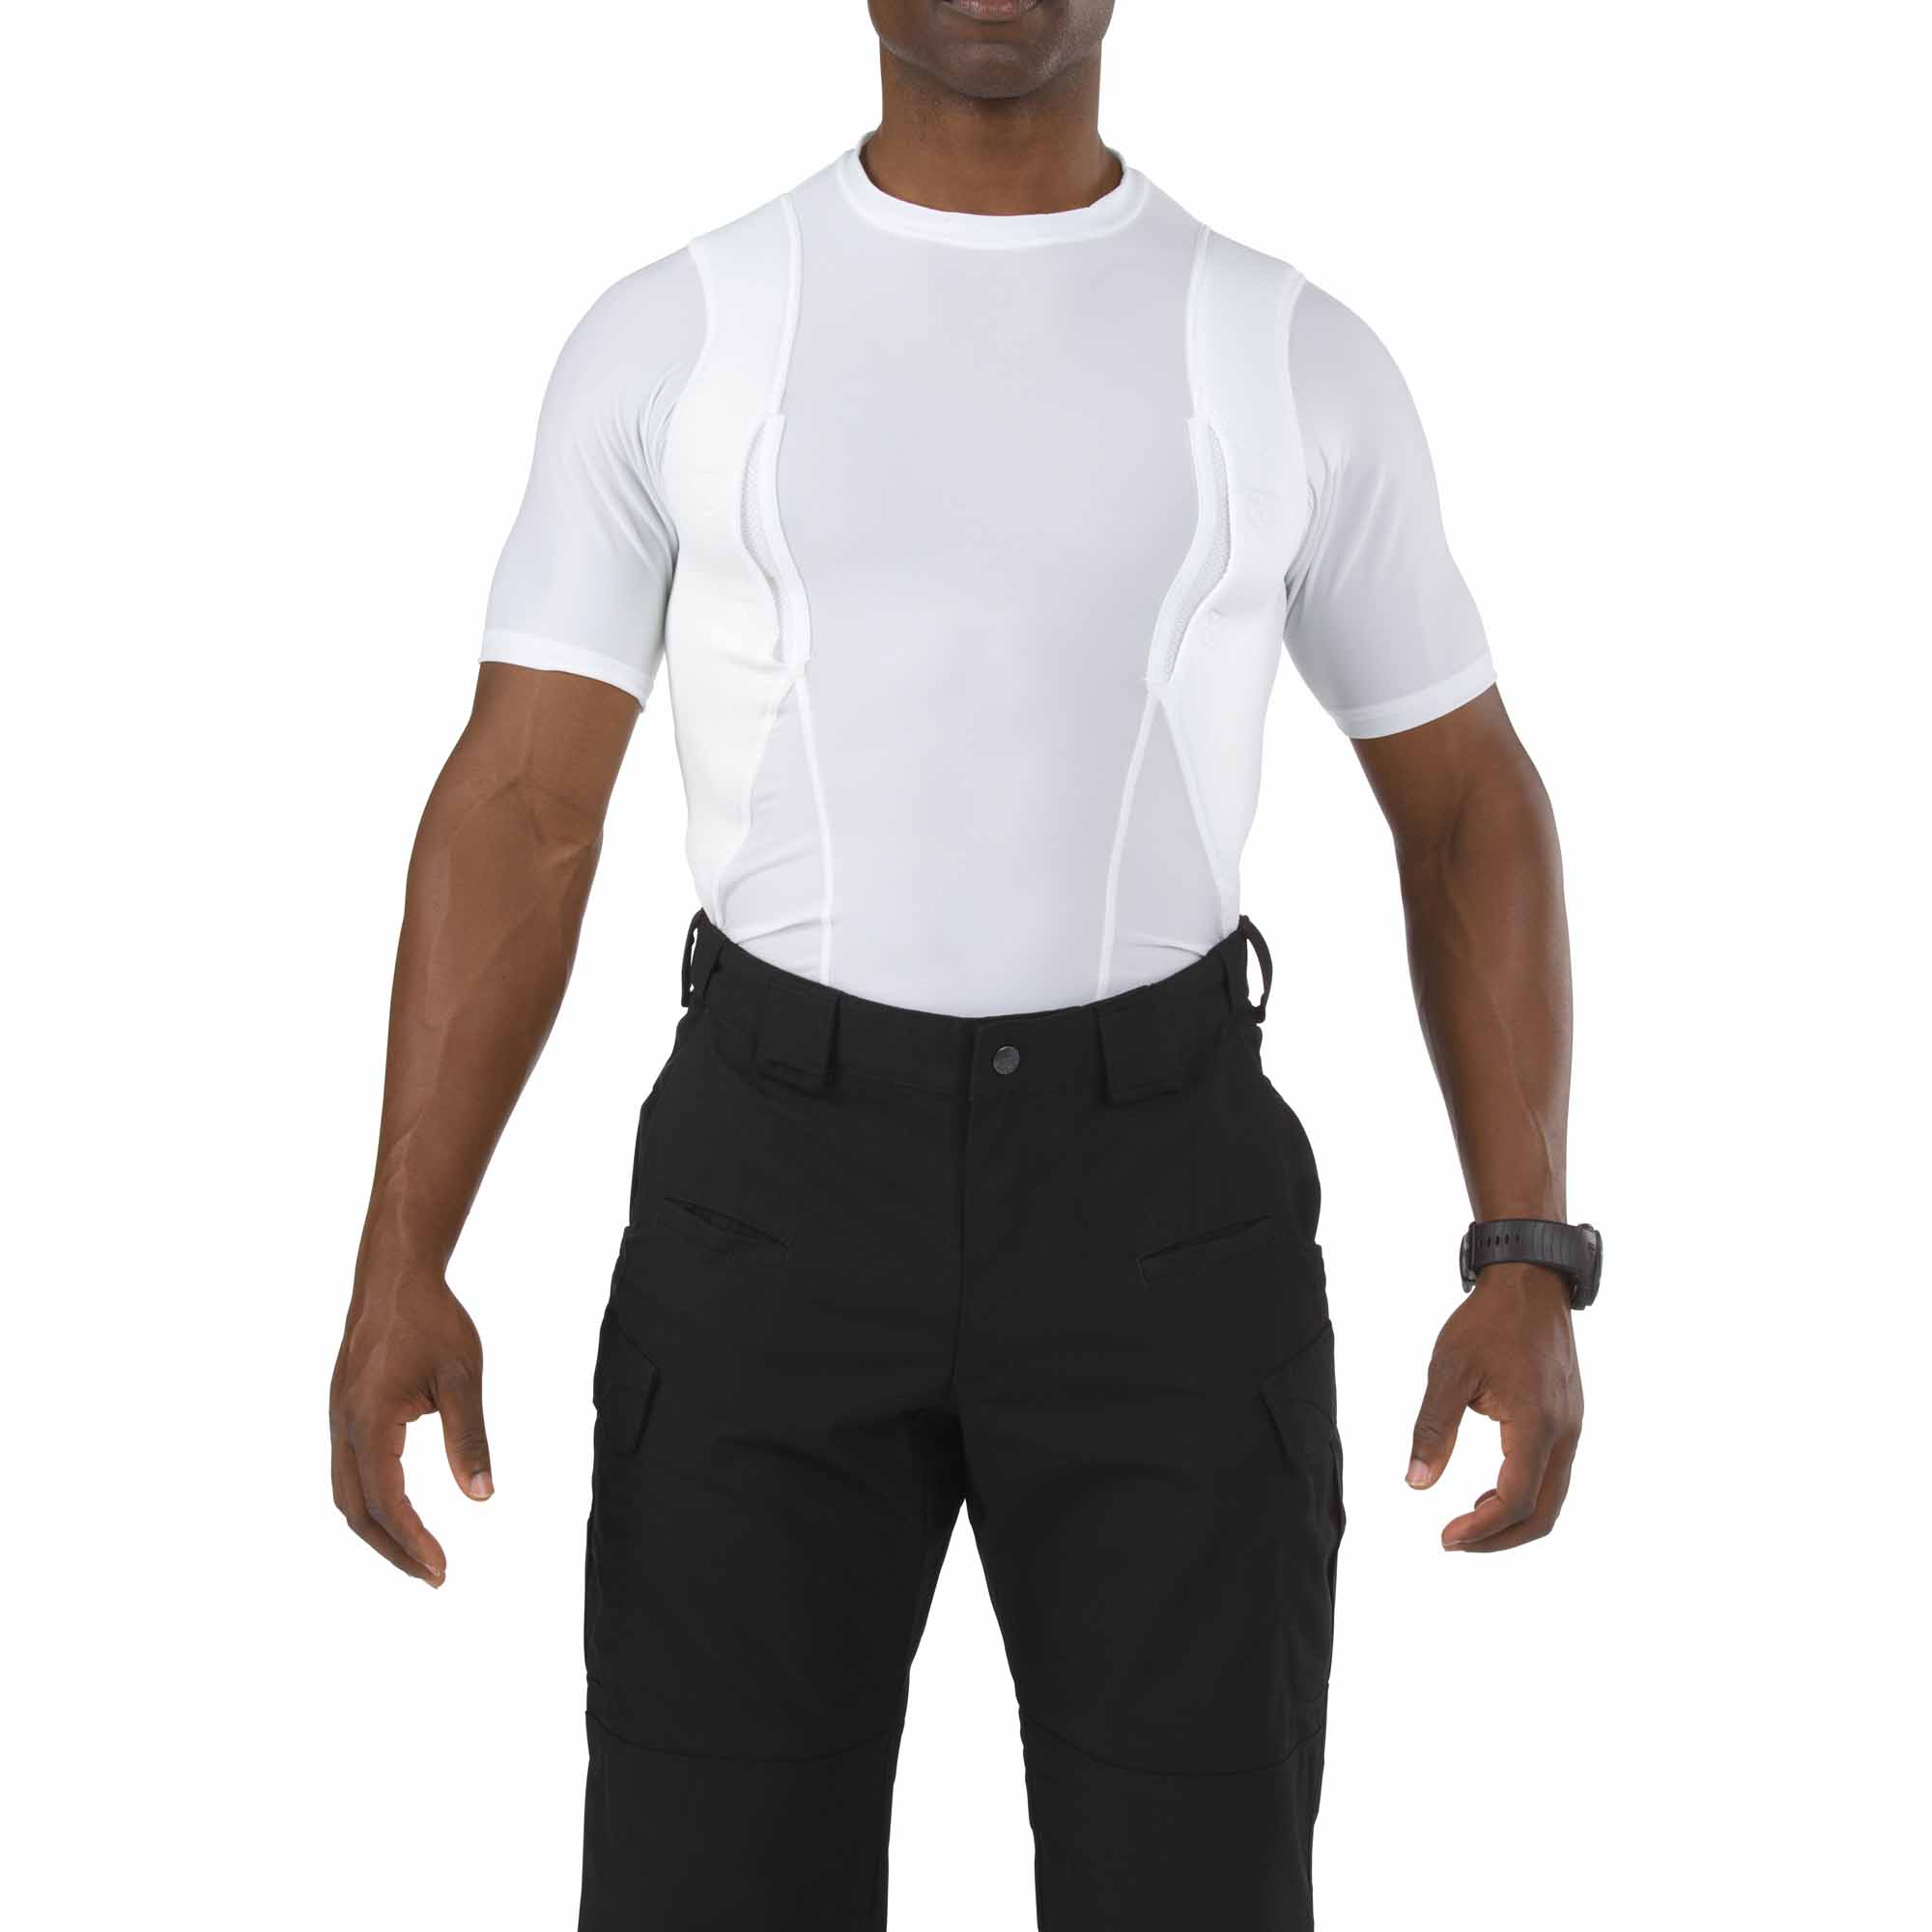 5.11 Tactical Men Holster Shirt (White), Size M (CCW Concealed Carry)